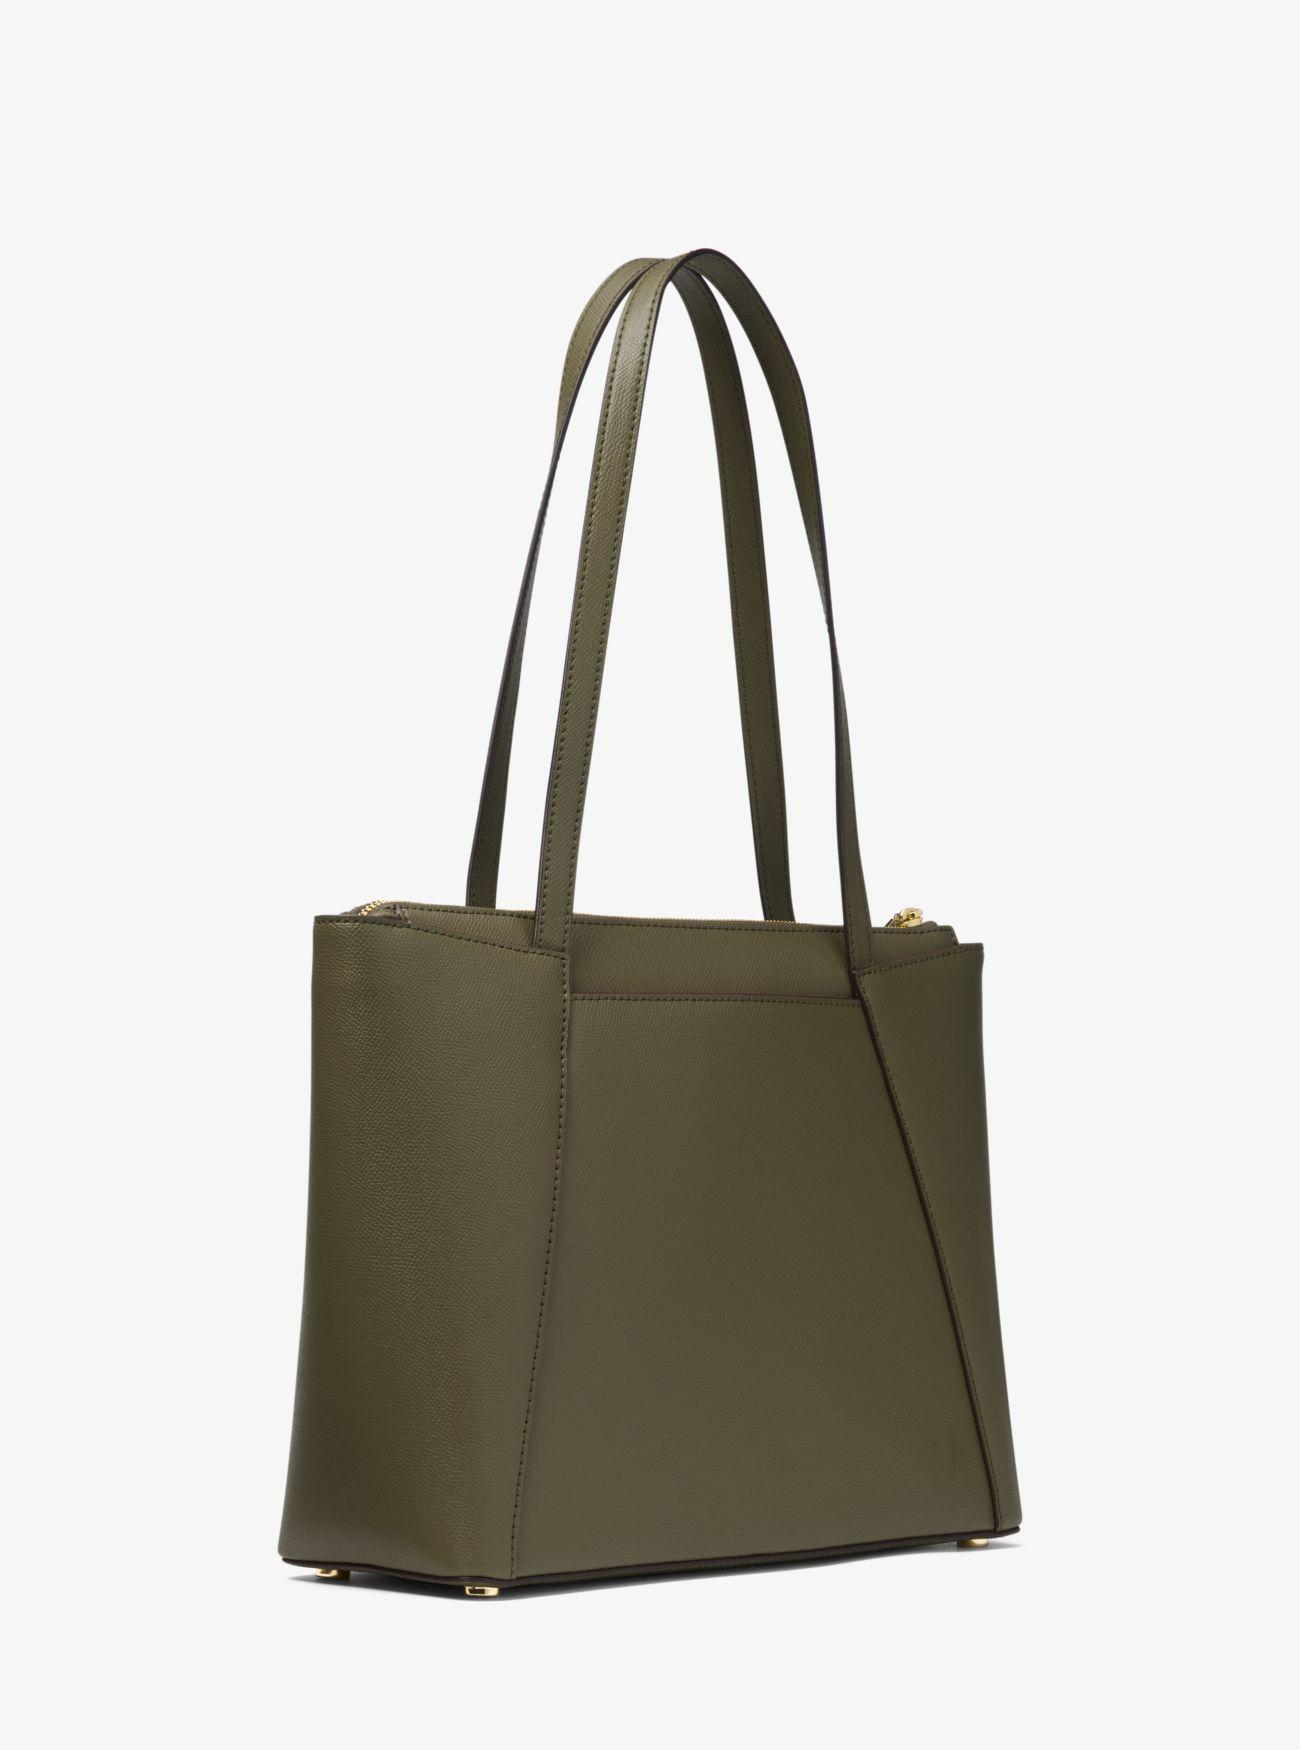 69c0bed18efb Michael Kors - Green Maddie Medium Crossgrain Leather Tote Bag - Lyst. View  fullscreen